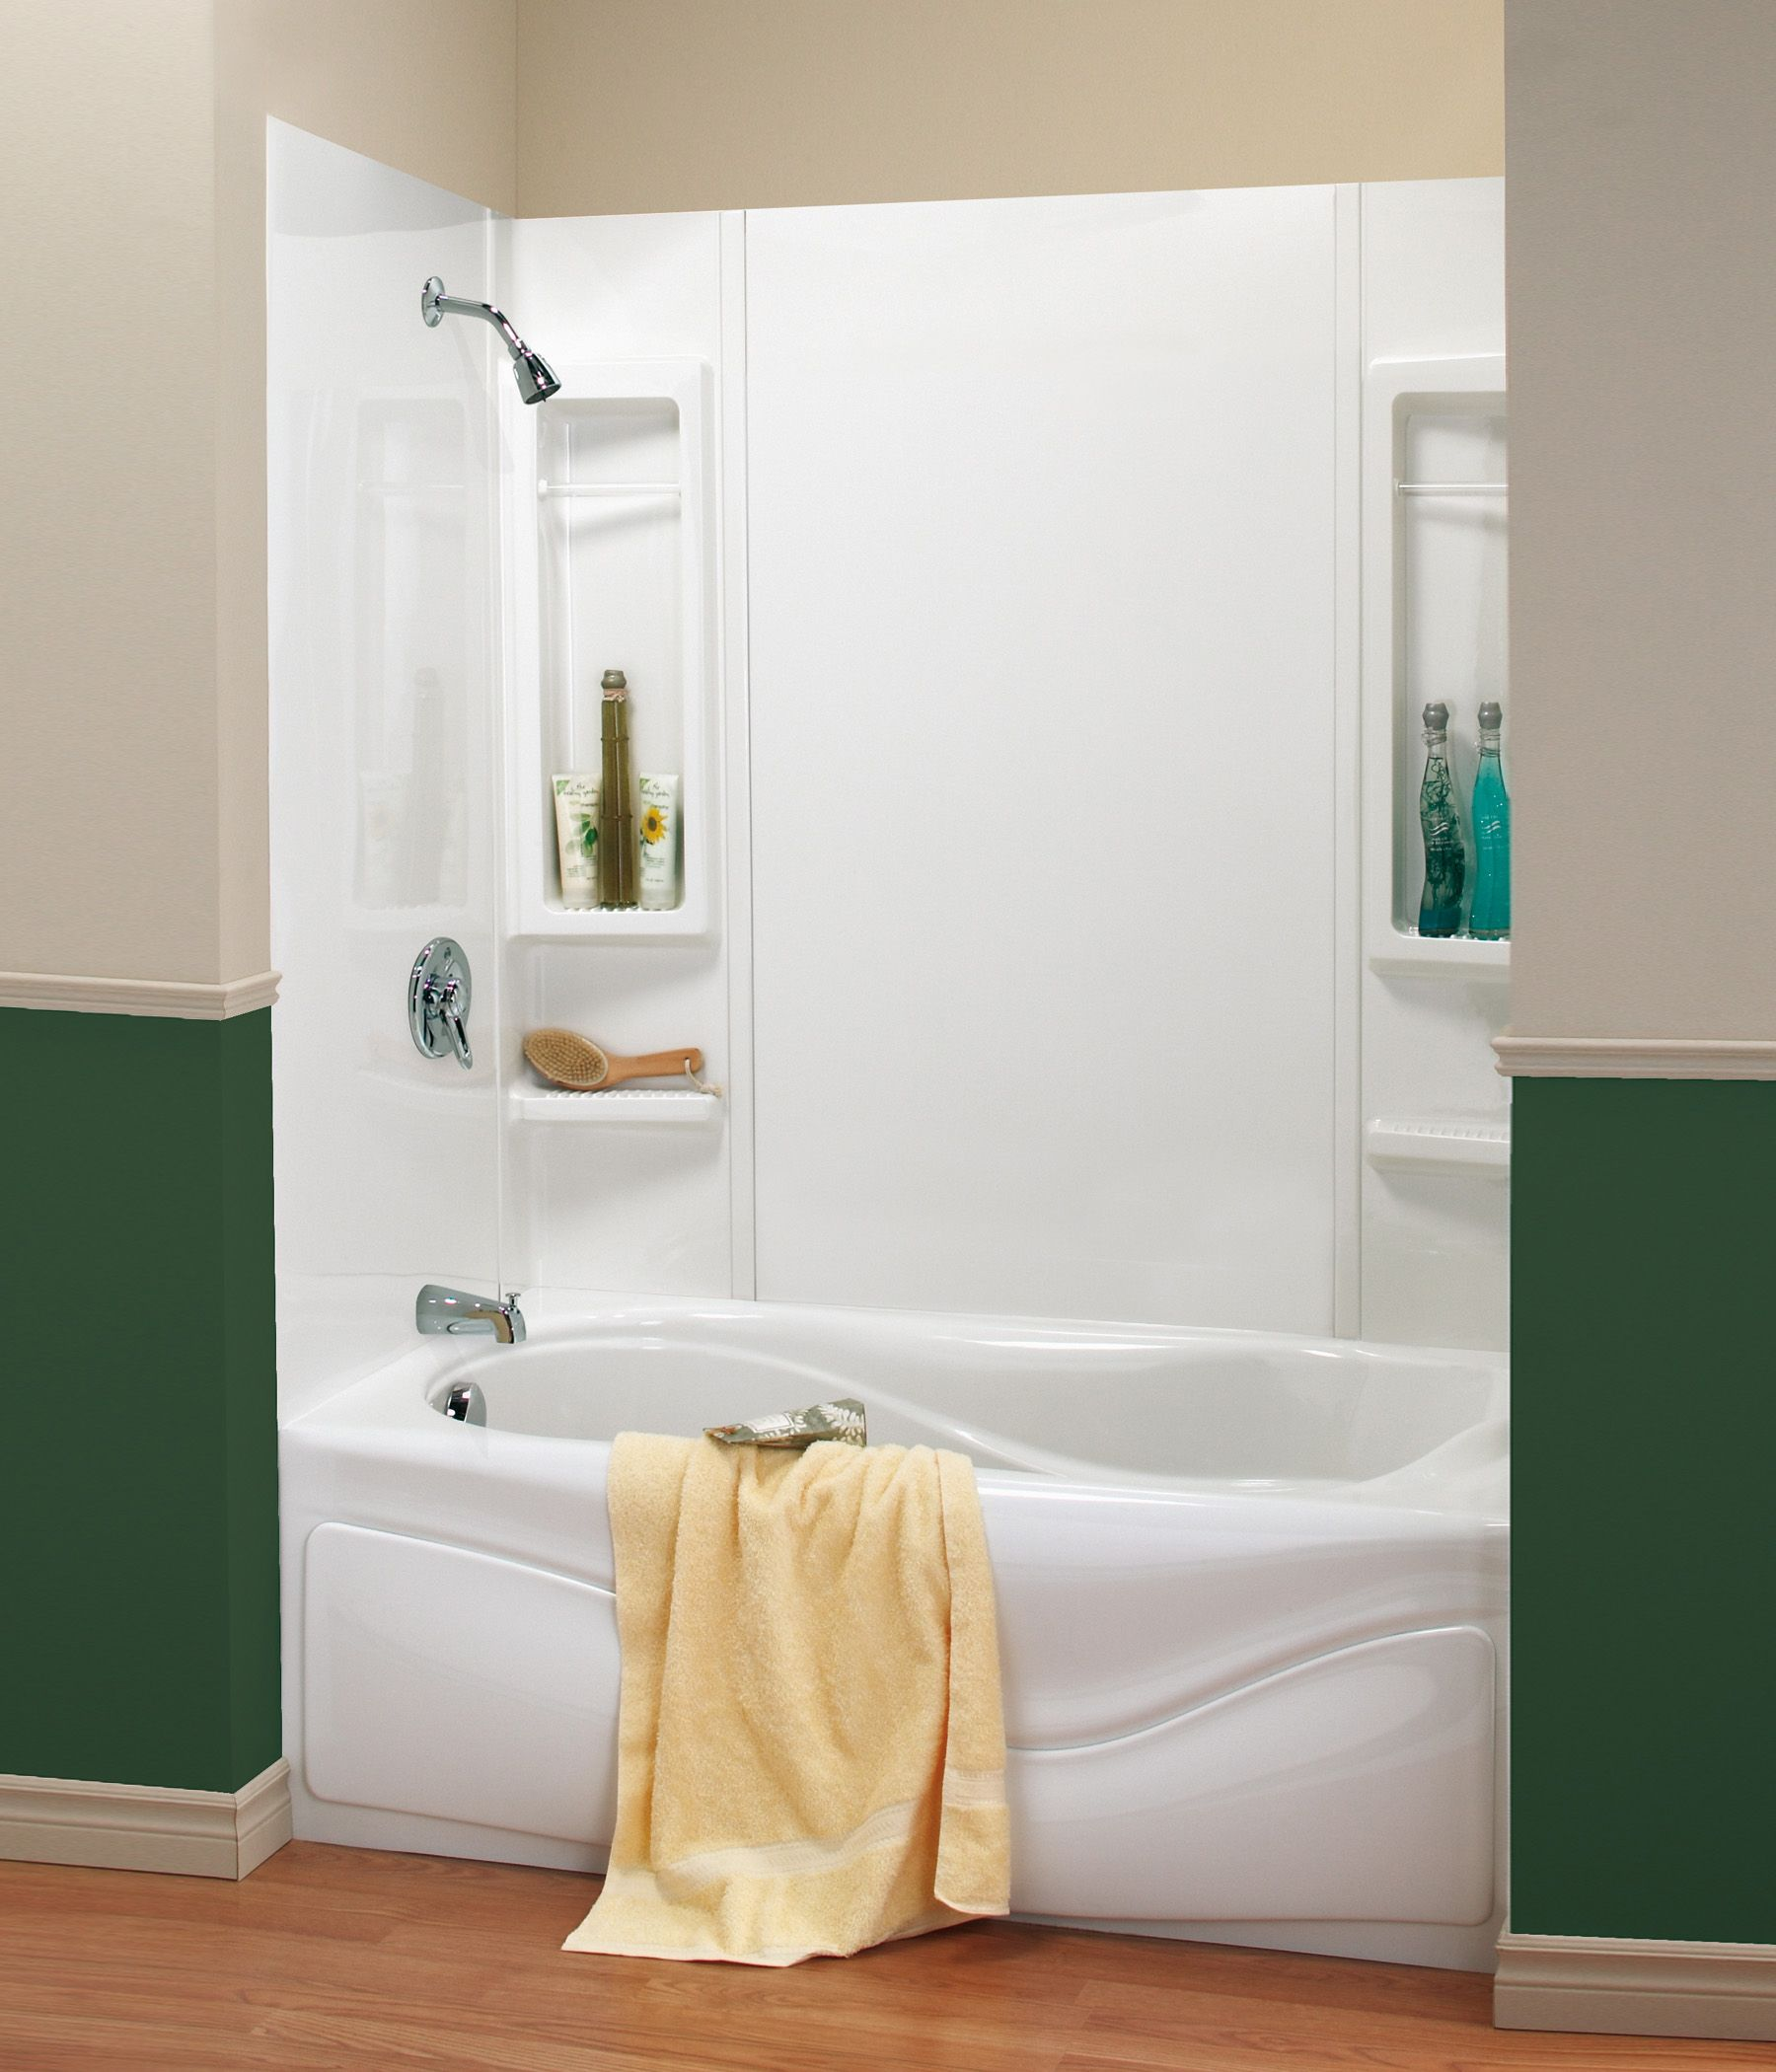 Acrylic One Piece Tub Shower. One Piece Bathtub Shower Combo  Hot Tubs Jacuzzis Pinterest